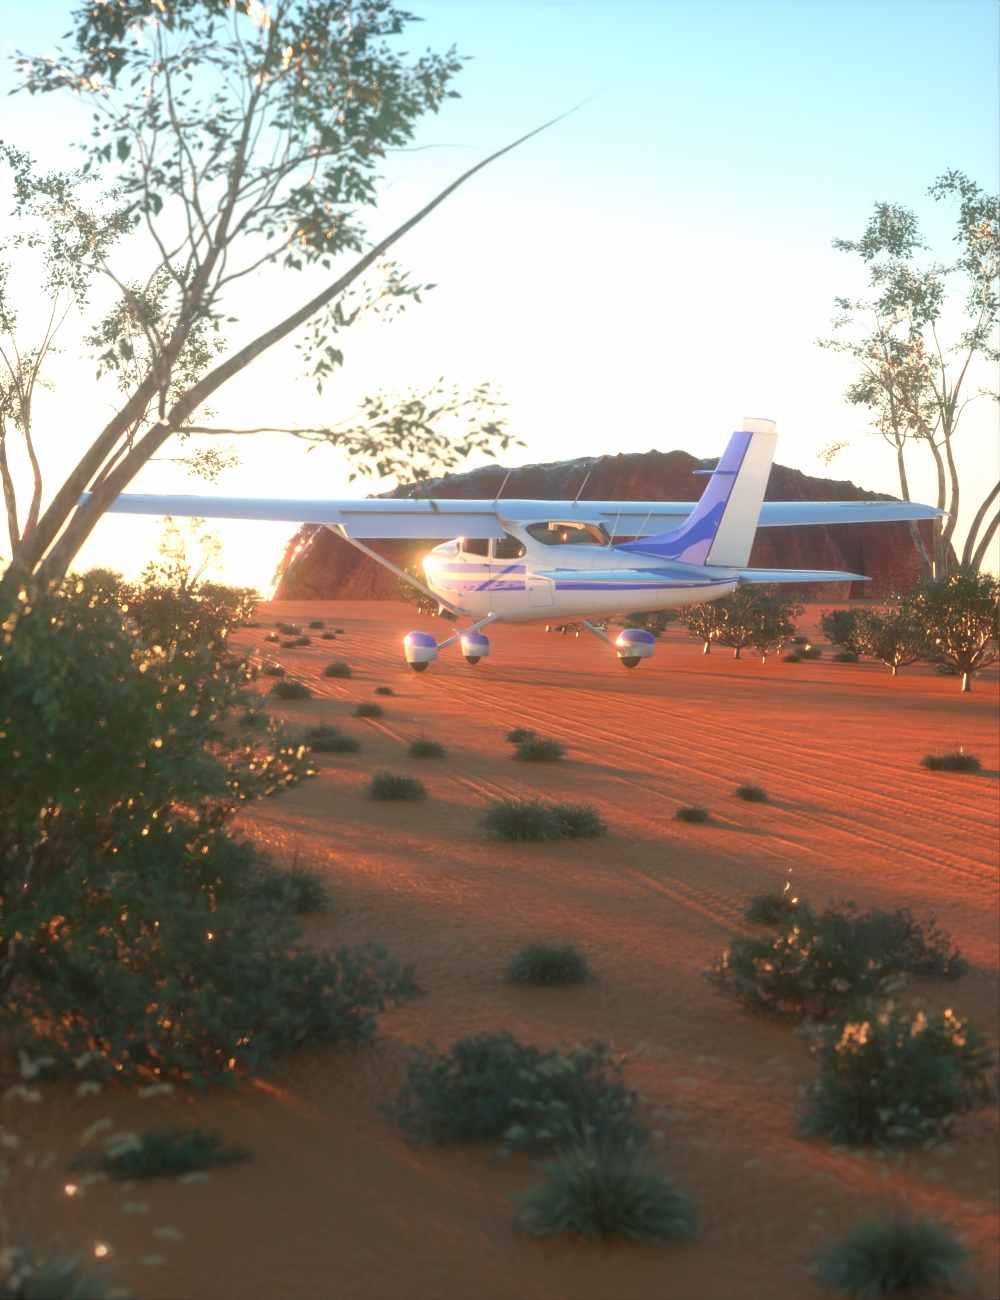 Australian Outback Environment by: AcharyaPolina, 3D Models by Daz 3D